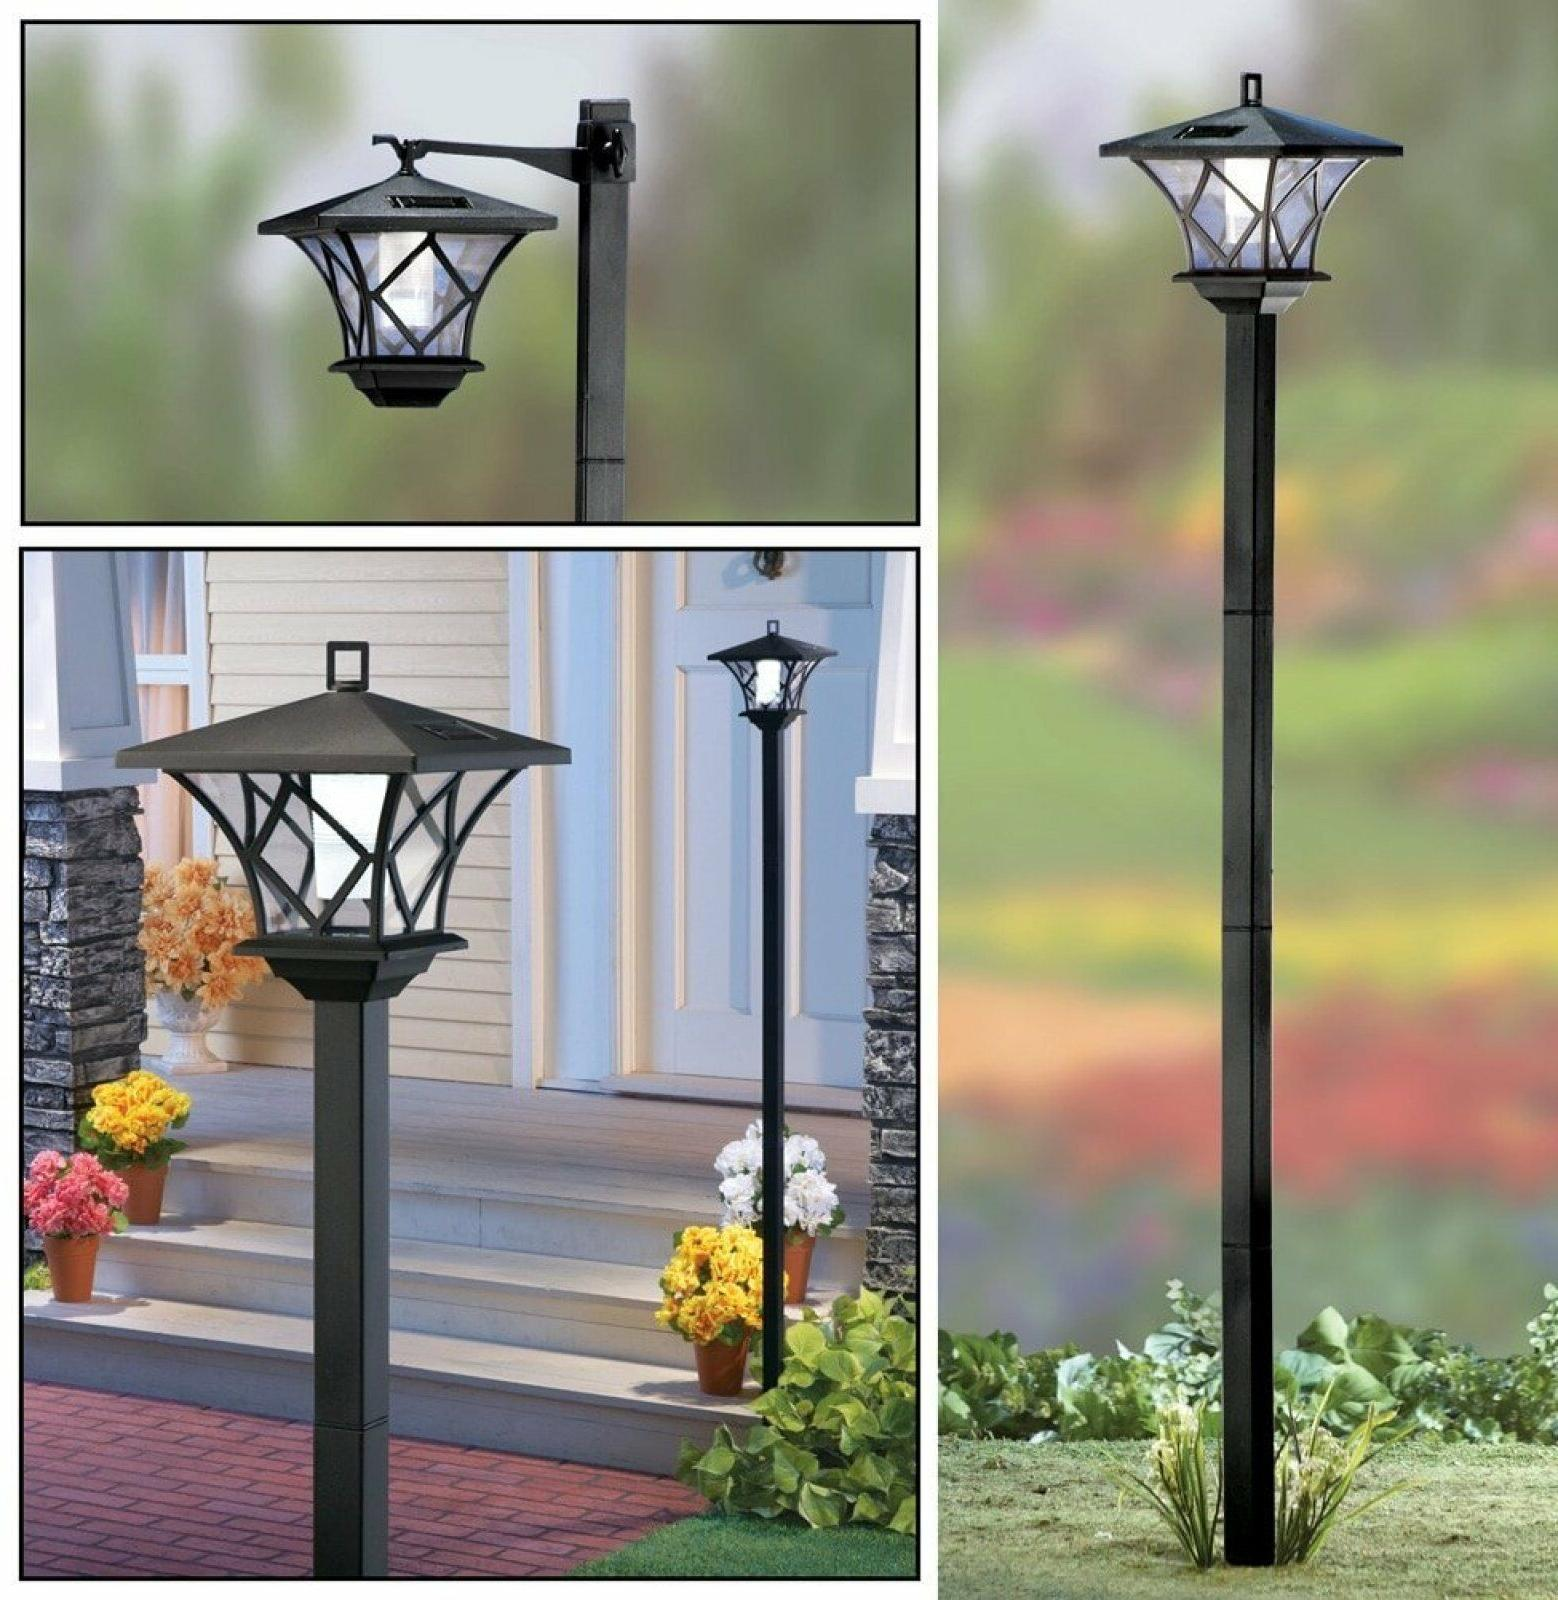 5 Ft Tall Solar Lamp Post Lights Outdoor Front Yard 2 in 1 G